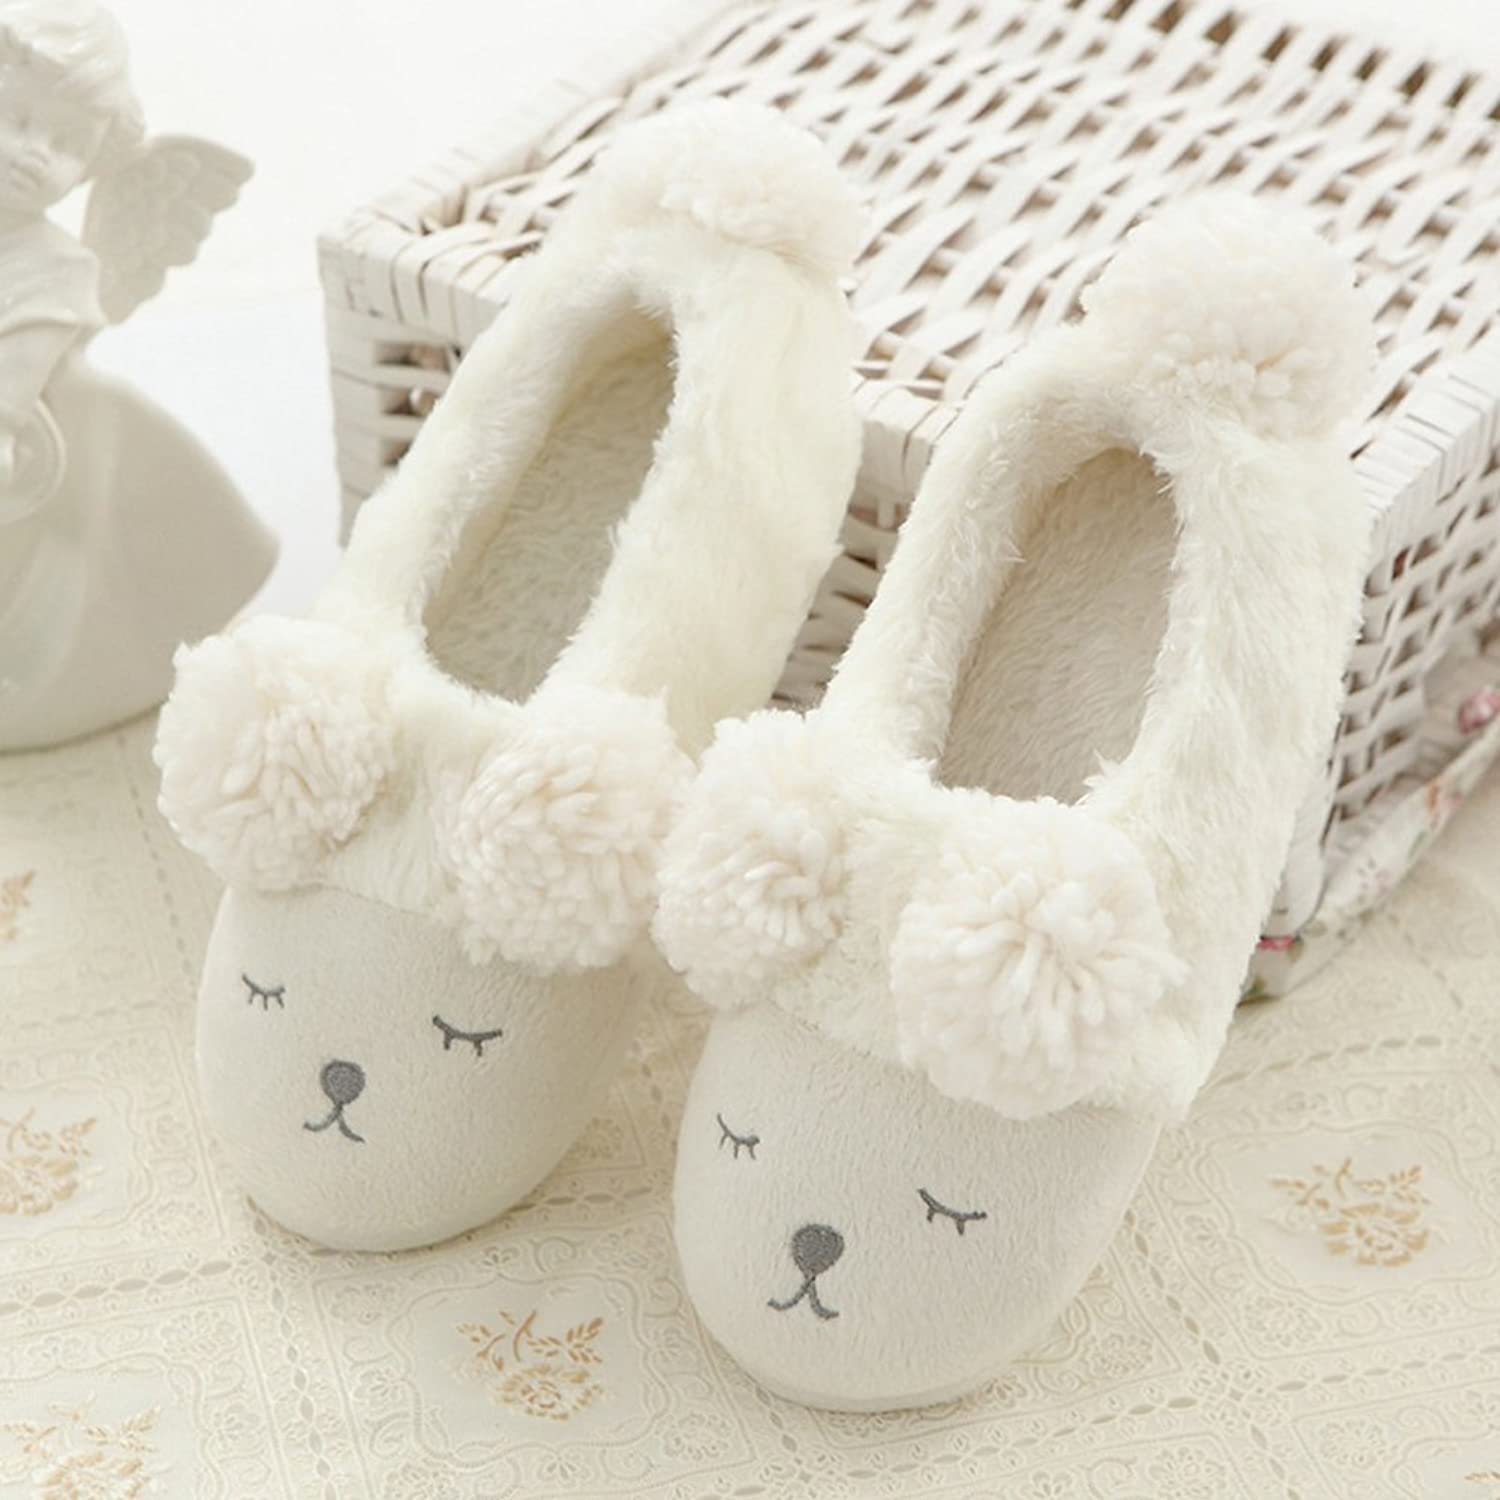 8haohuo Womens Warm Plush Fuzzy Fluffy Indoor House Boots Slippers